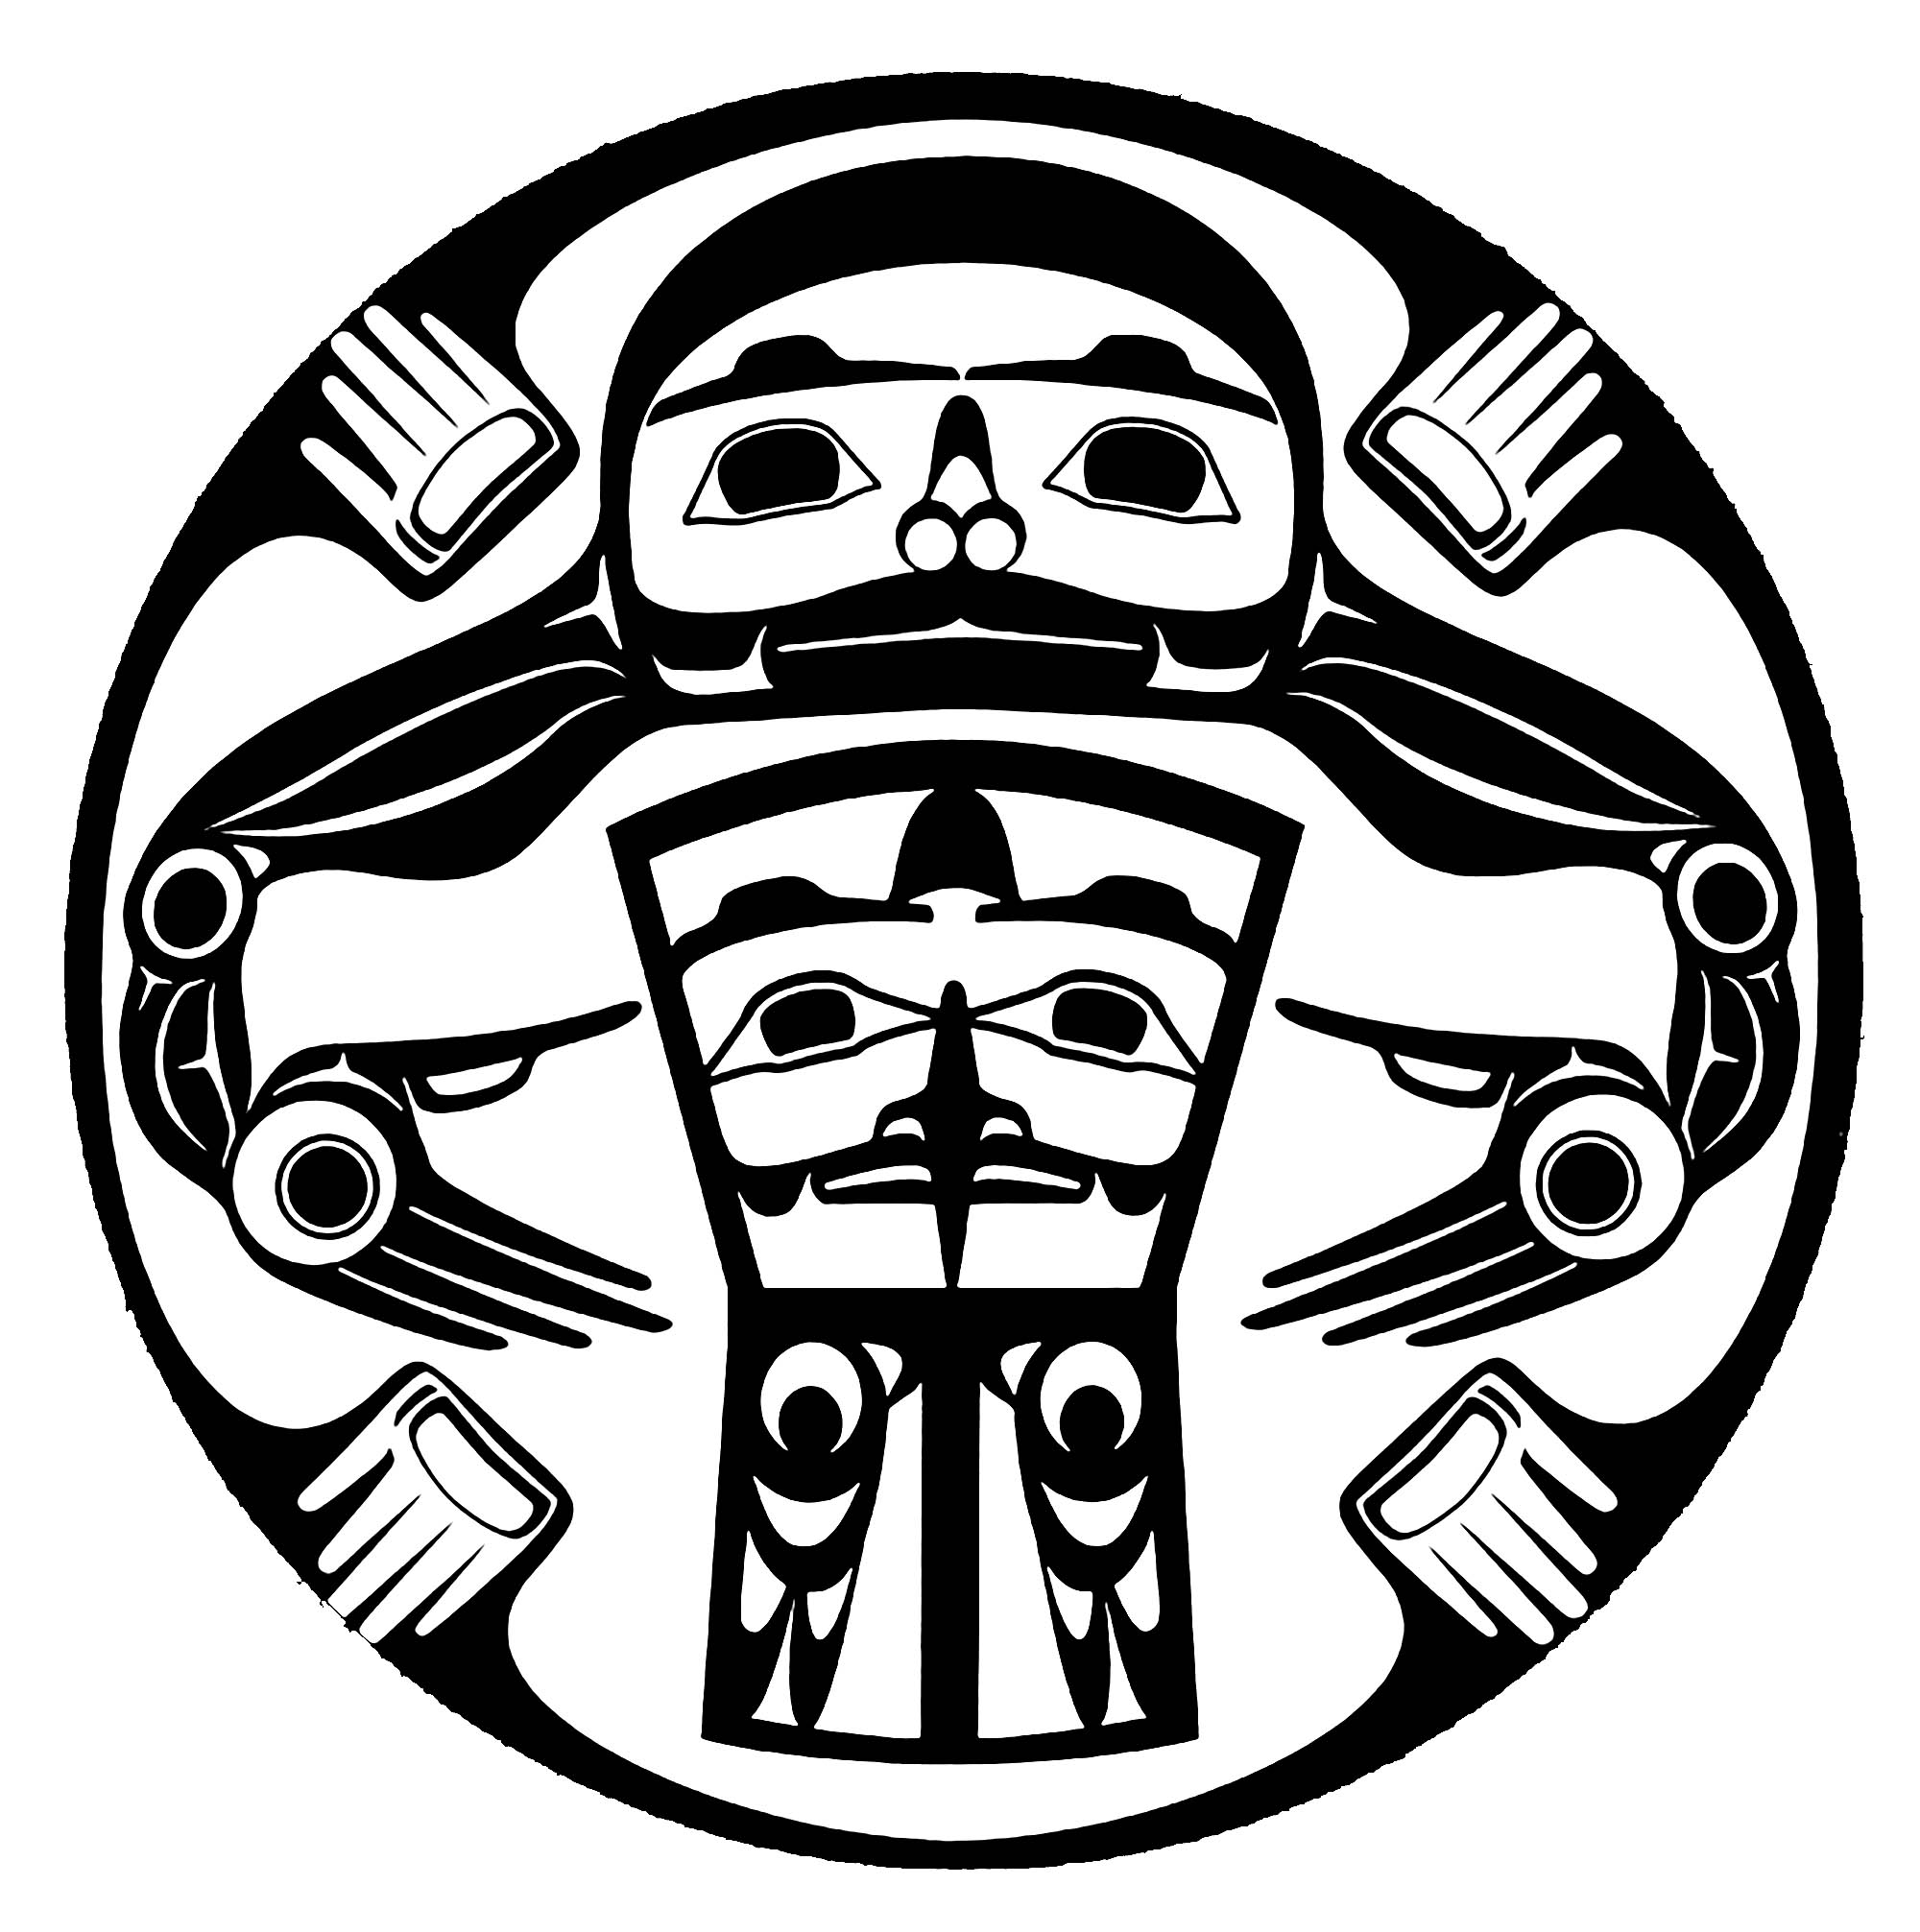 Art northwest coastal people potlatch moon roy native american moon roy inspired by artwork by henry vickers biocorpaavc Image collections